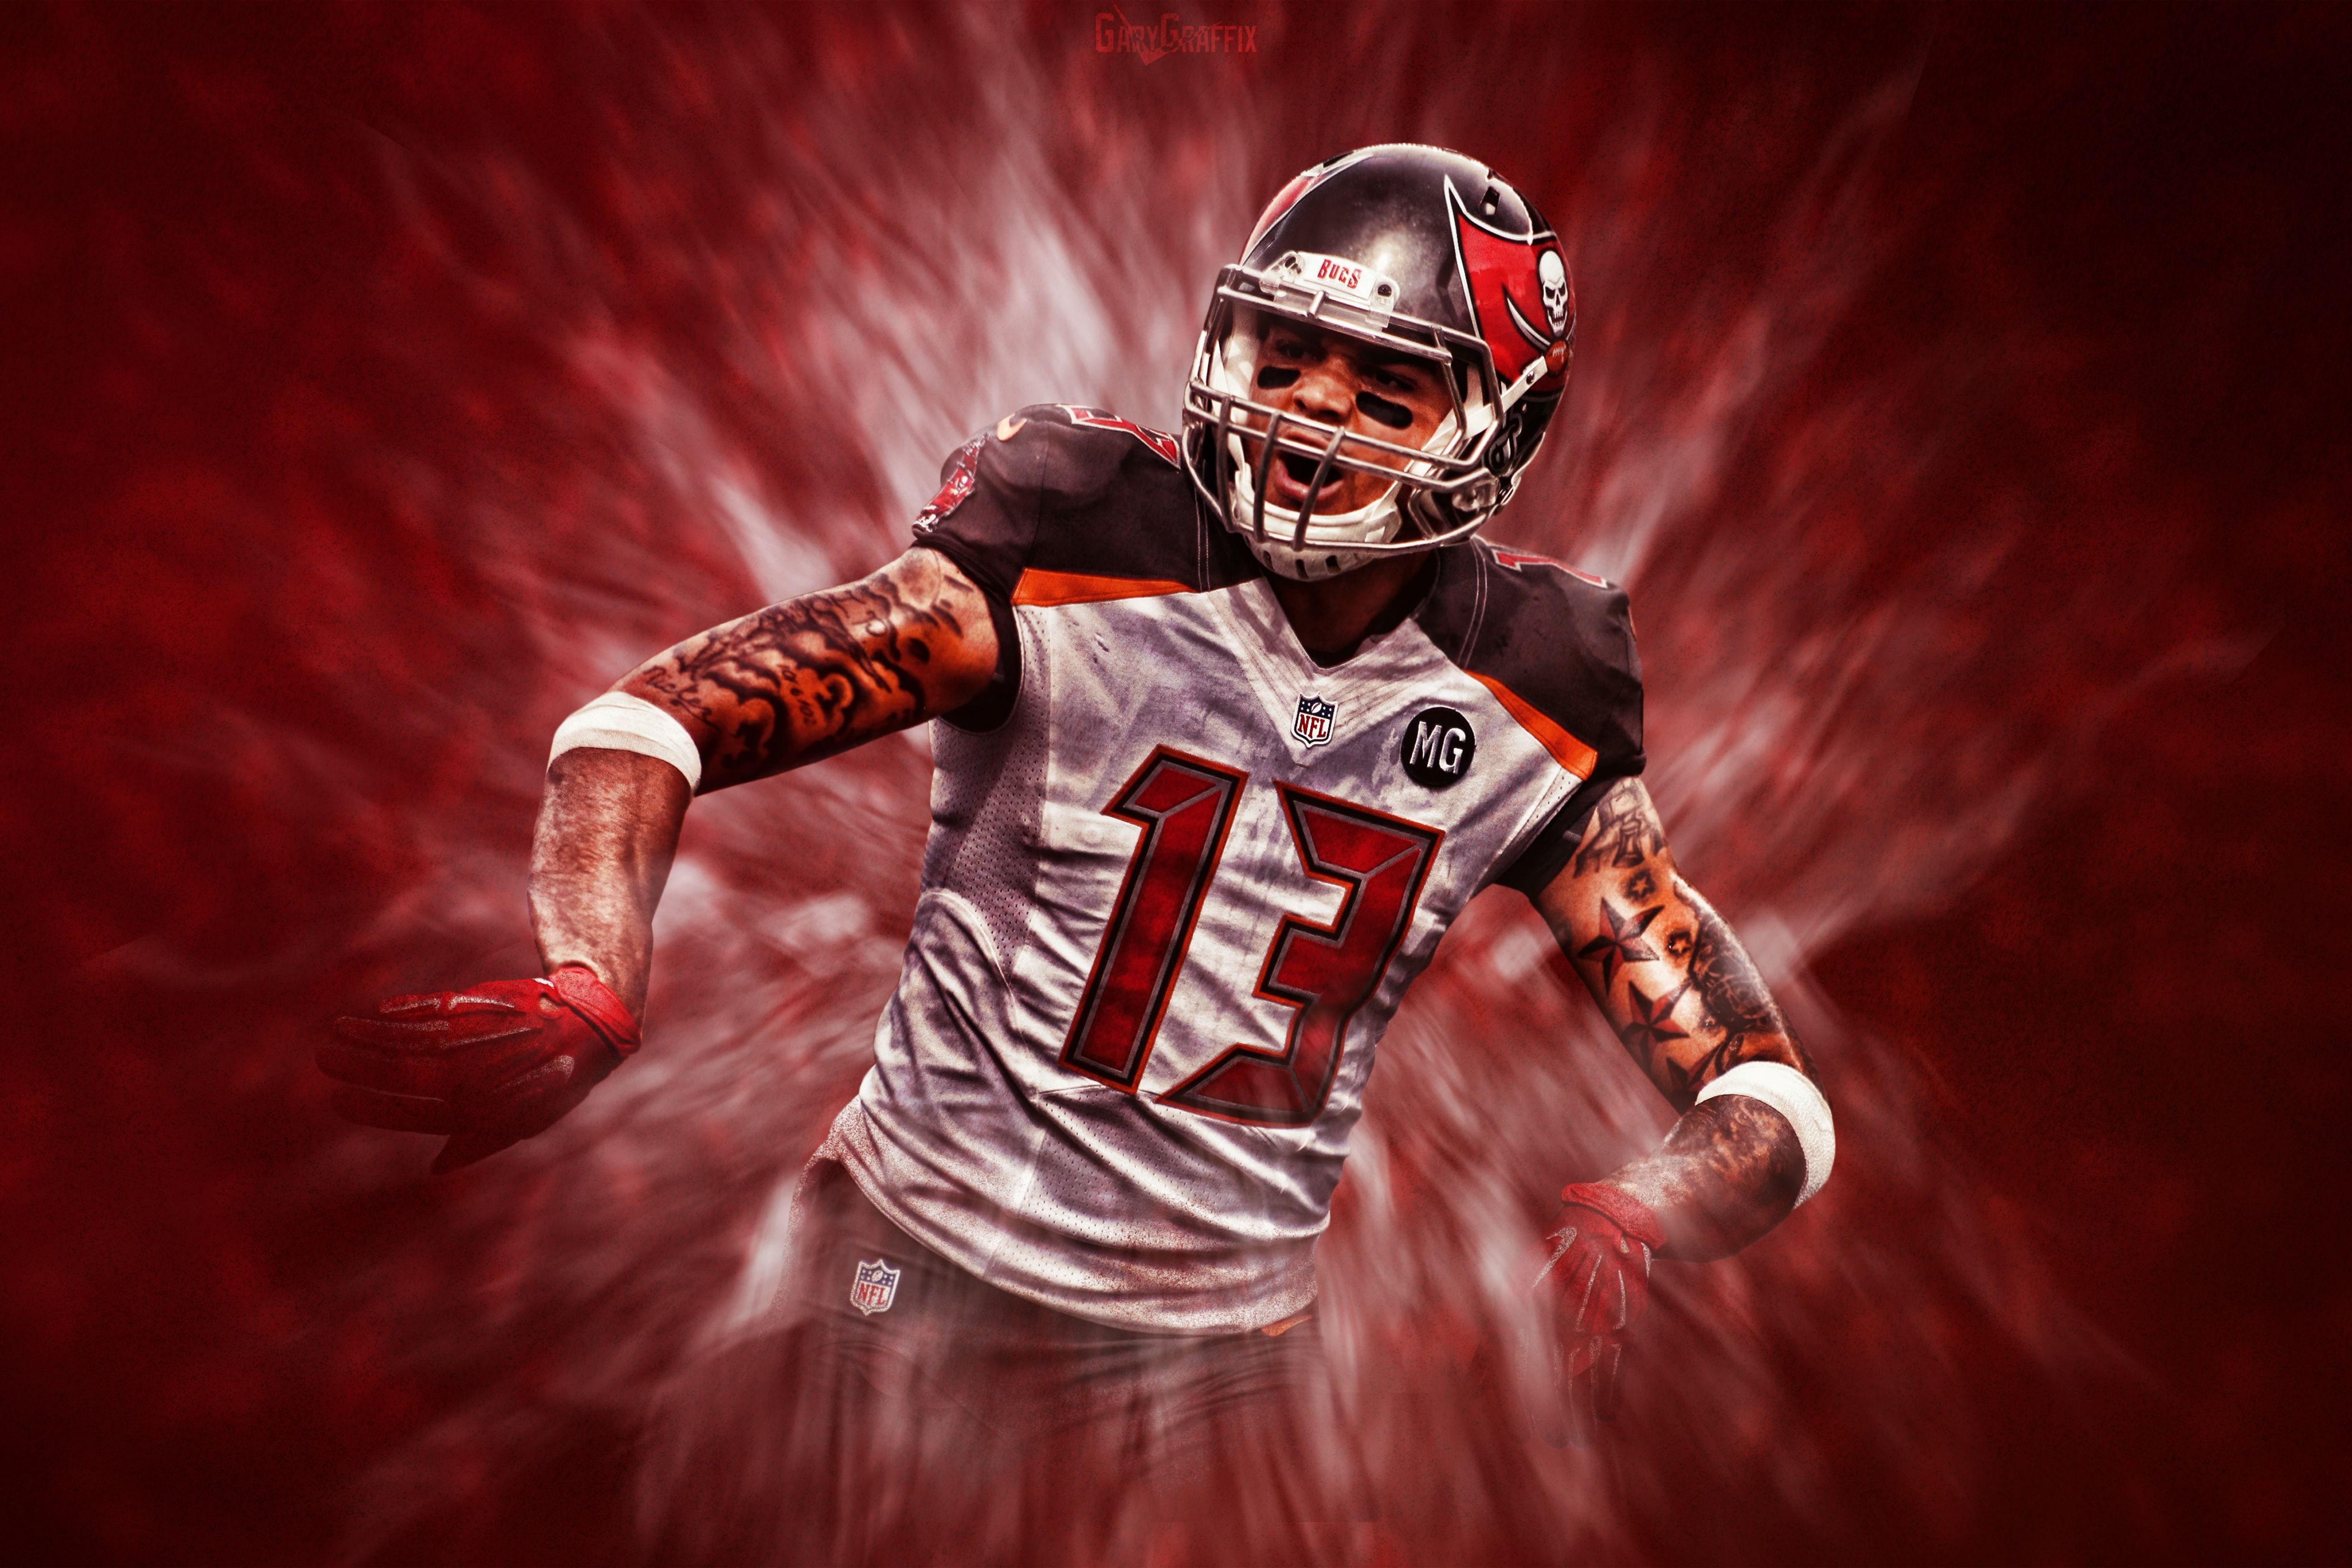 100% authentic 9ee7a 4e1bd Mike Evans Wallpapers - Wallpaper Cave